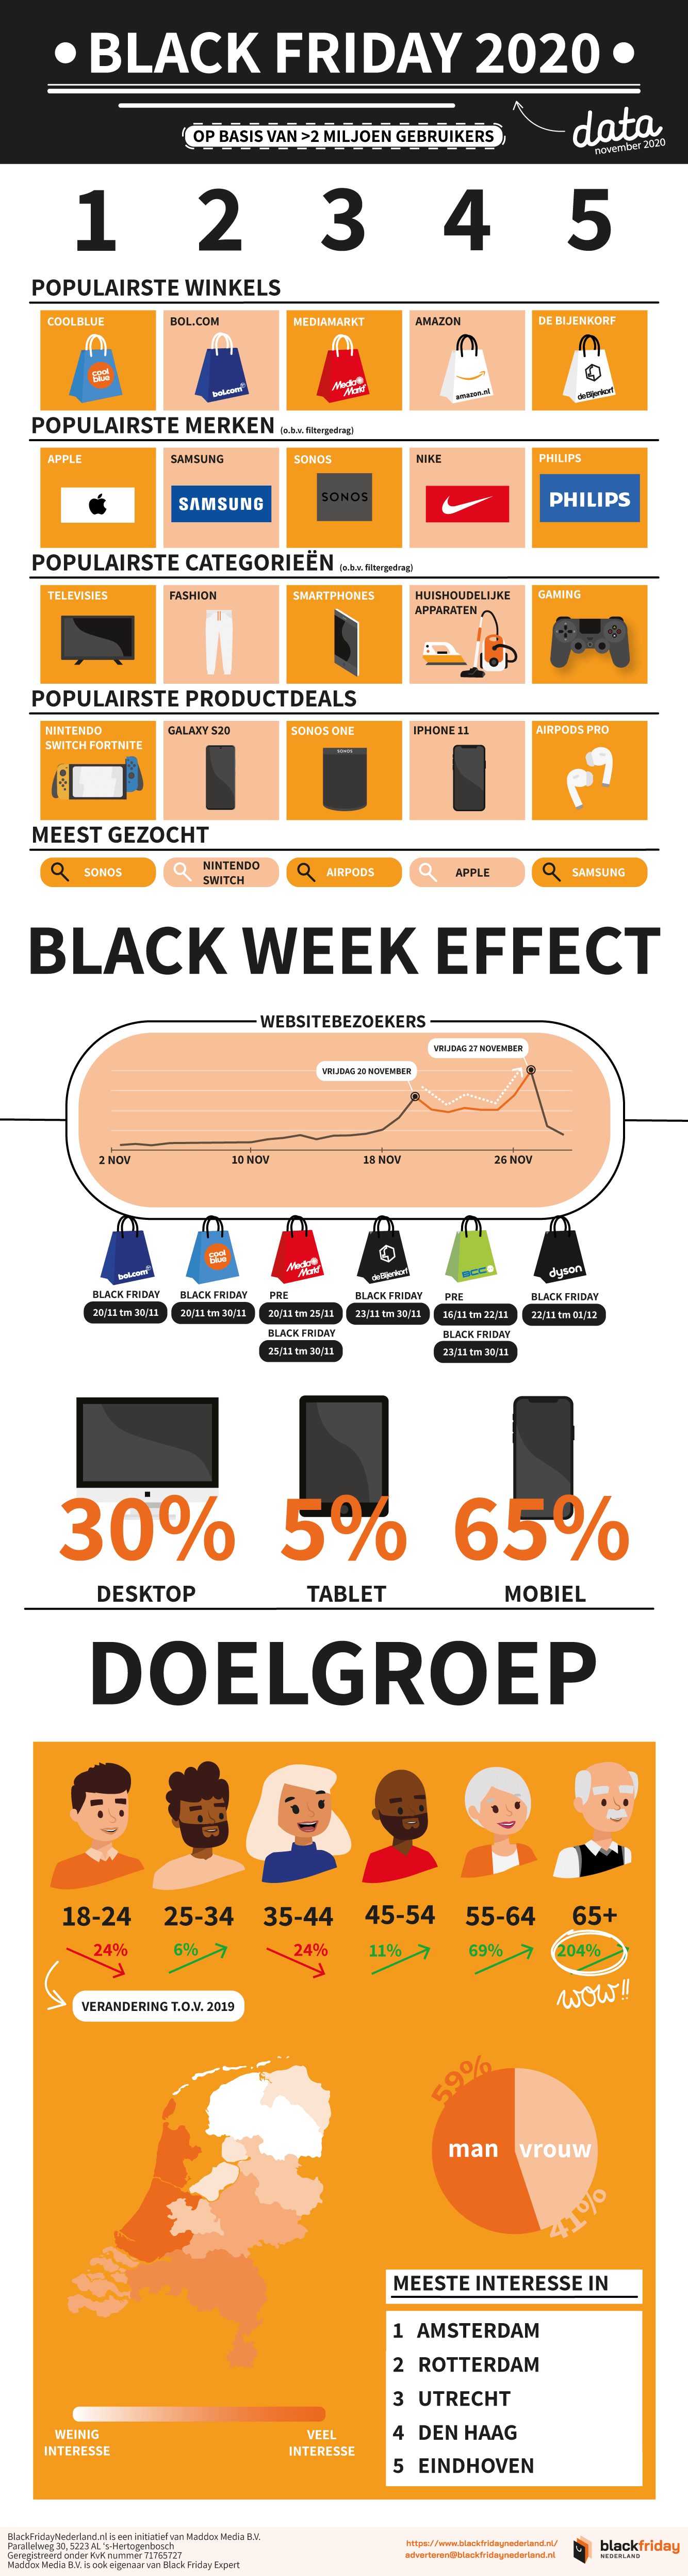 Infographic Black Friday 2020 NL